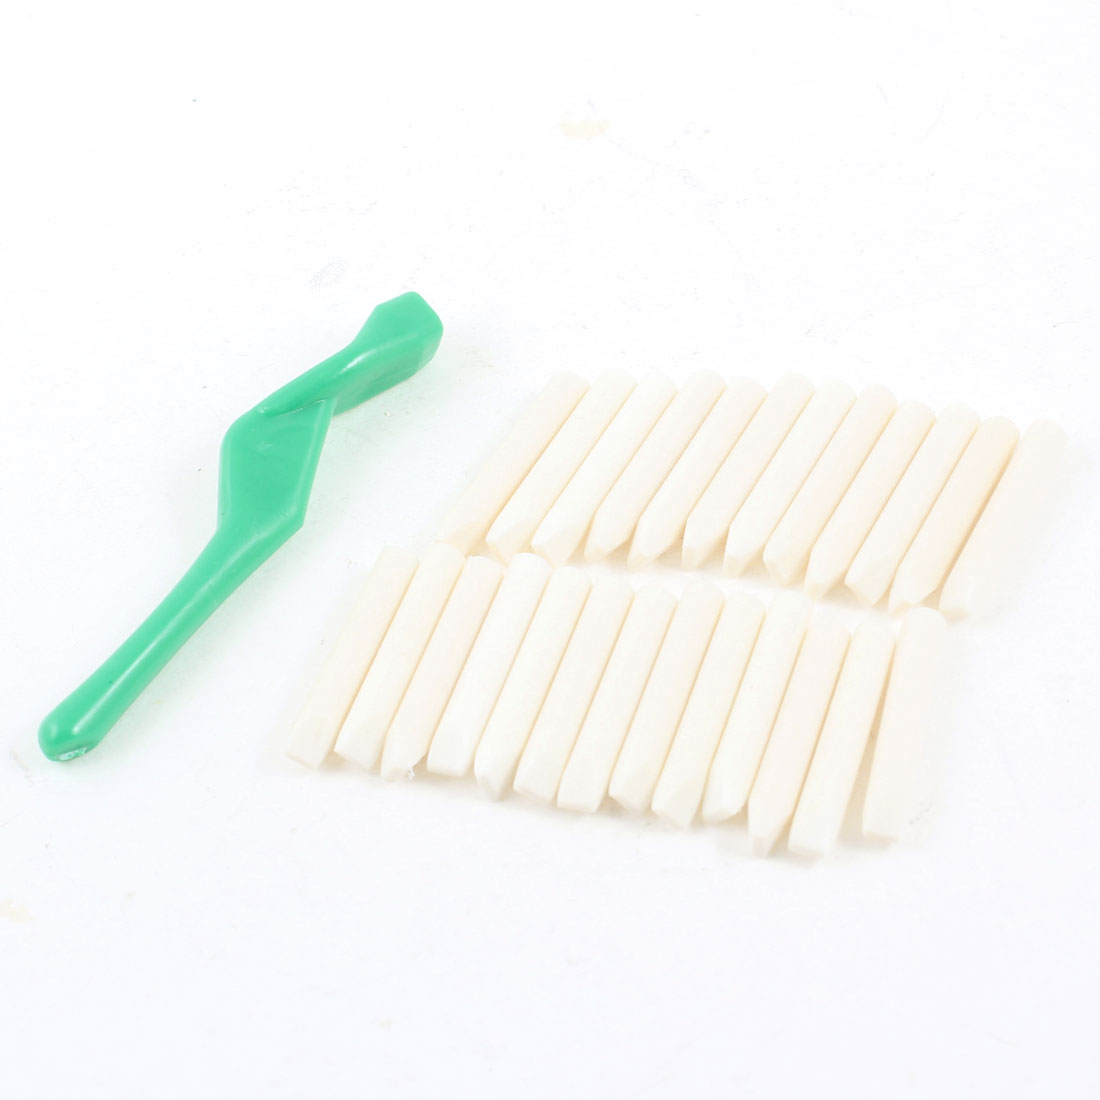 Teeth Tooth Dental Stains Cleaner Cyan Stick + 25 Pcs Eraser